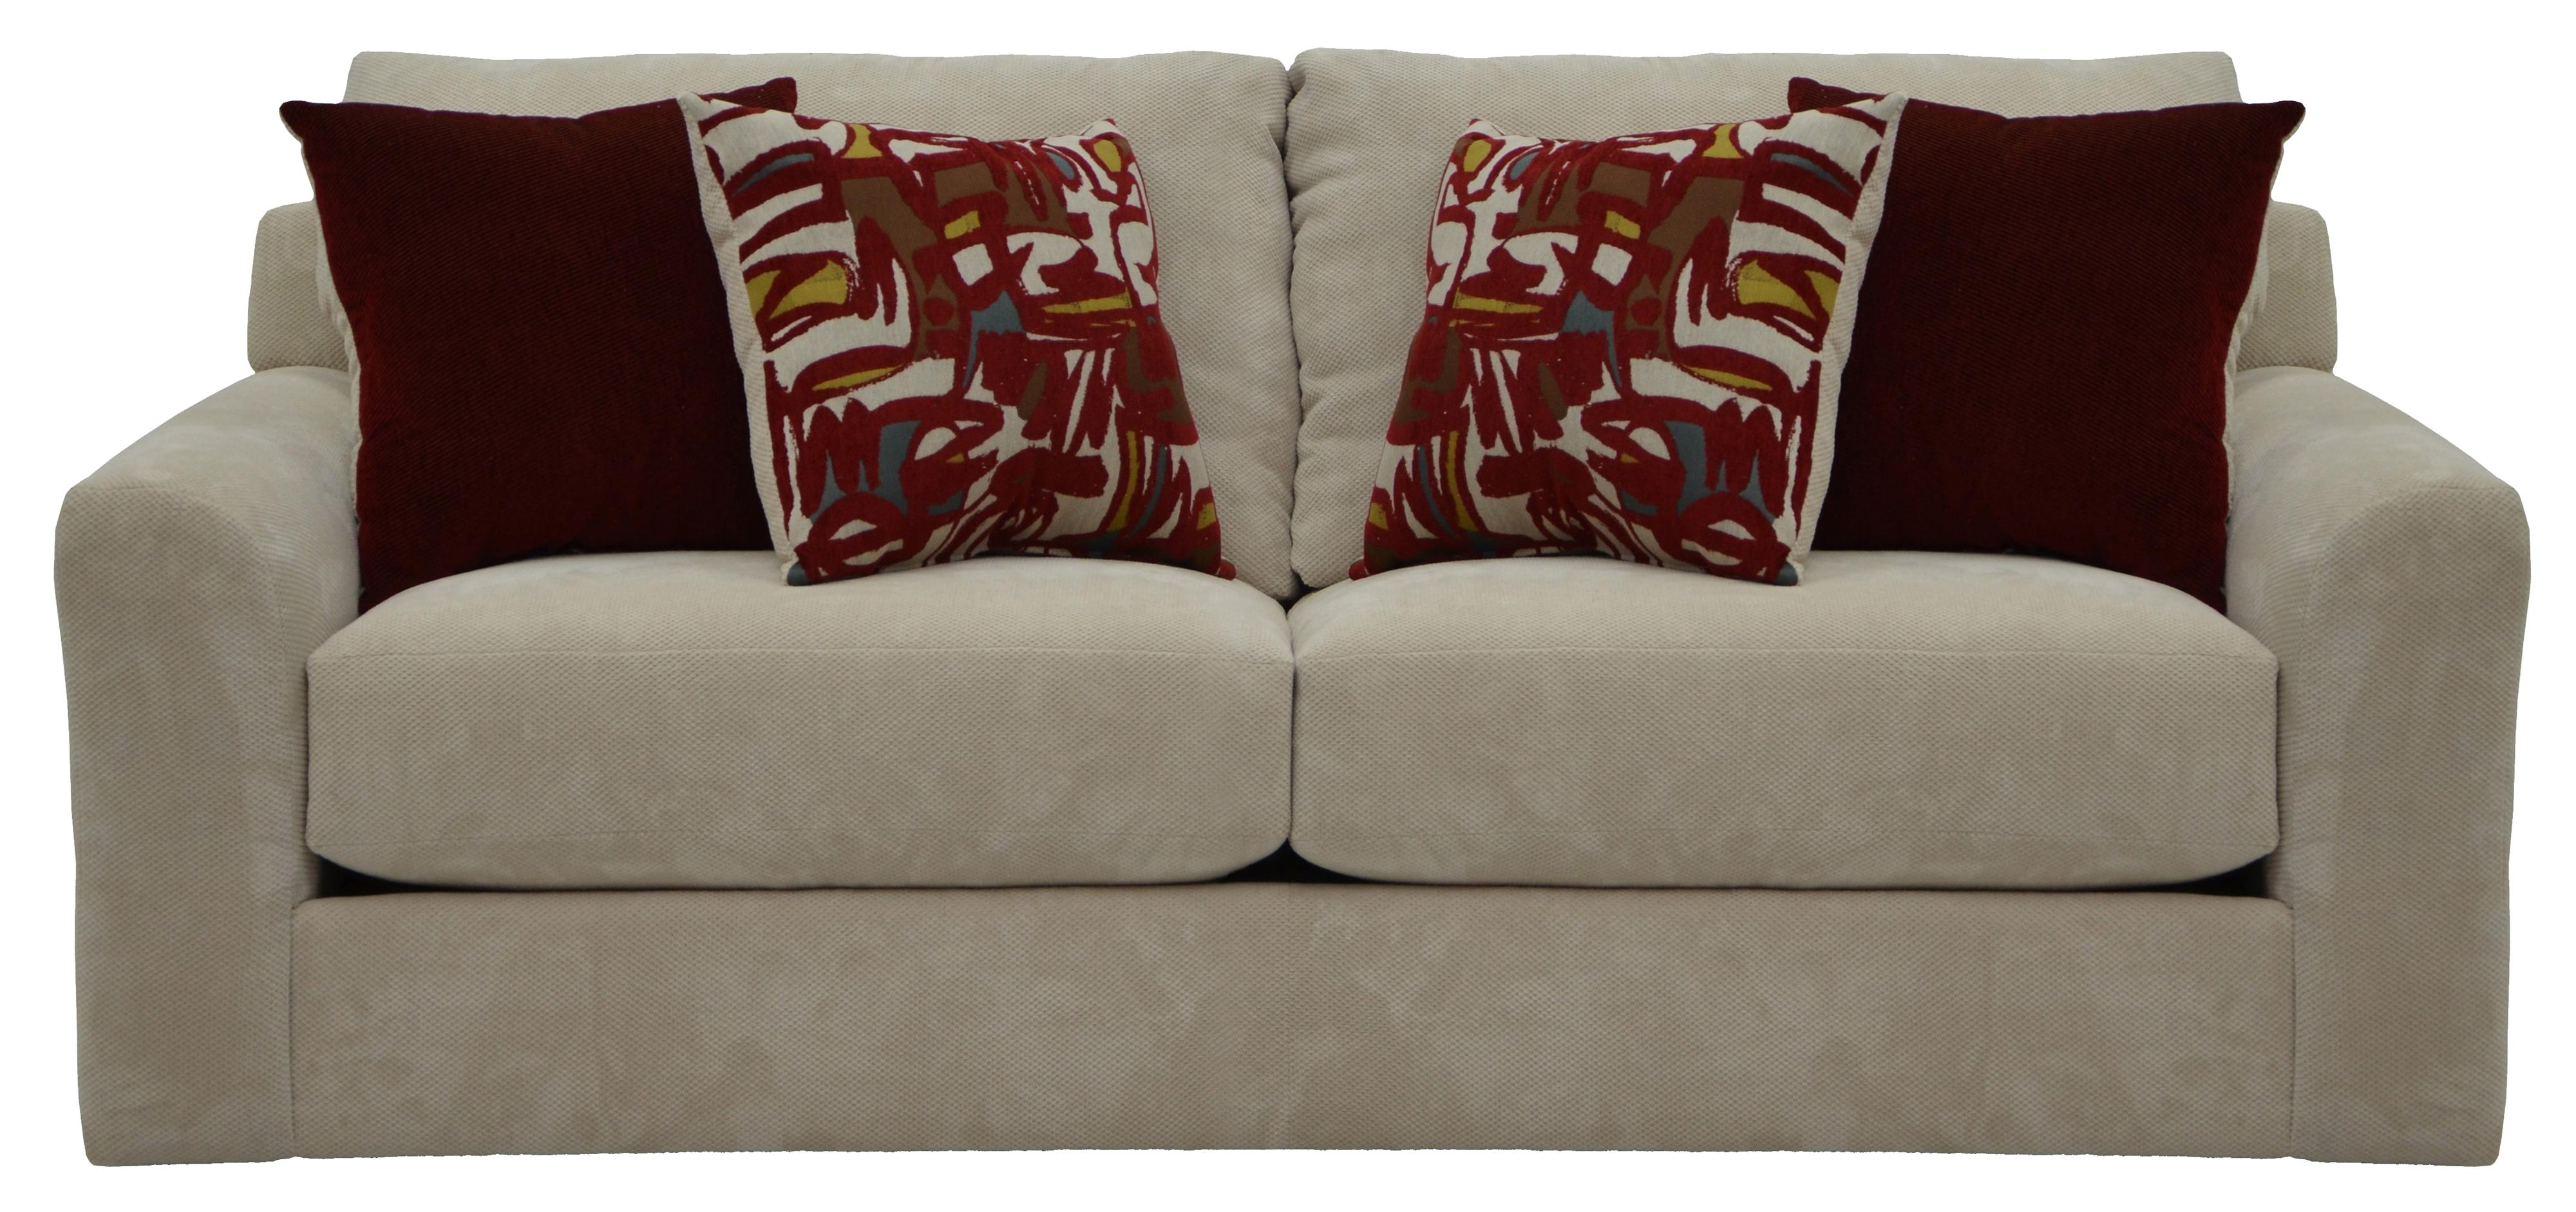 Jackson Furniture Sutton Sleeper Sofa with Casual Style